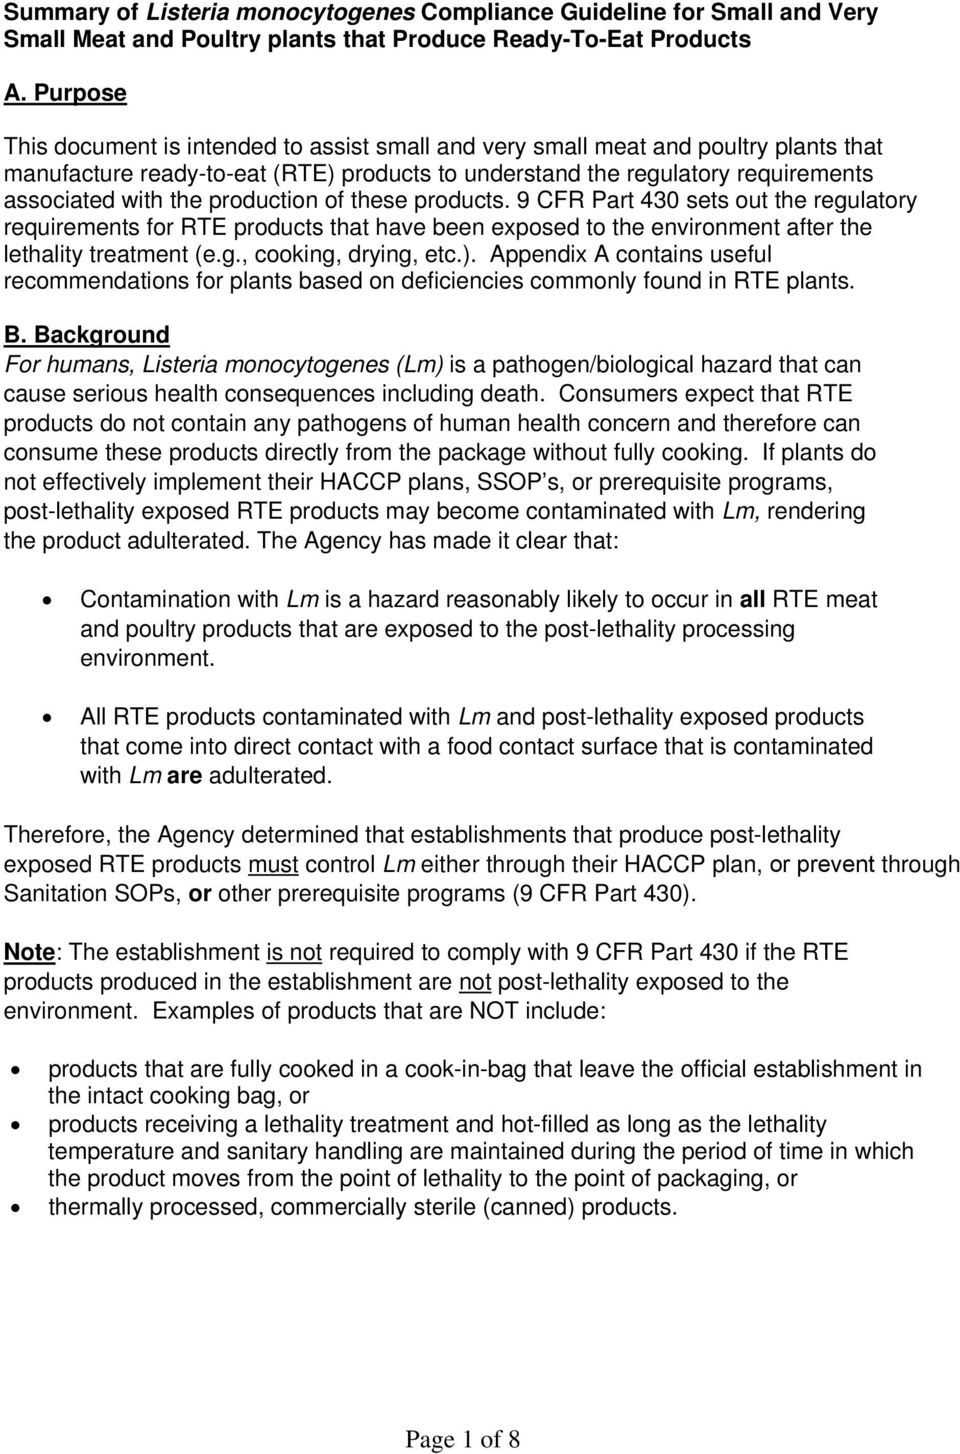 production of these products. 9 CFR Part 430 sets out the regulatory requirements for RTE products that have been exposed to the environment after the lethality treatment (e.g., cooking, drying, etc.